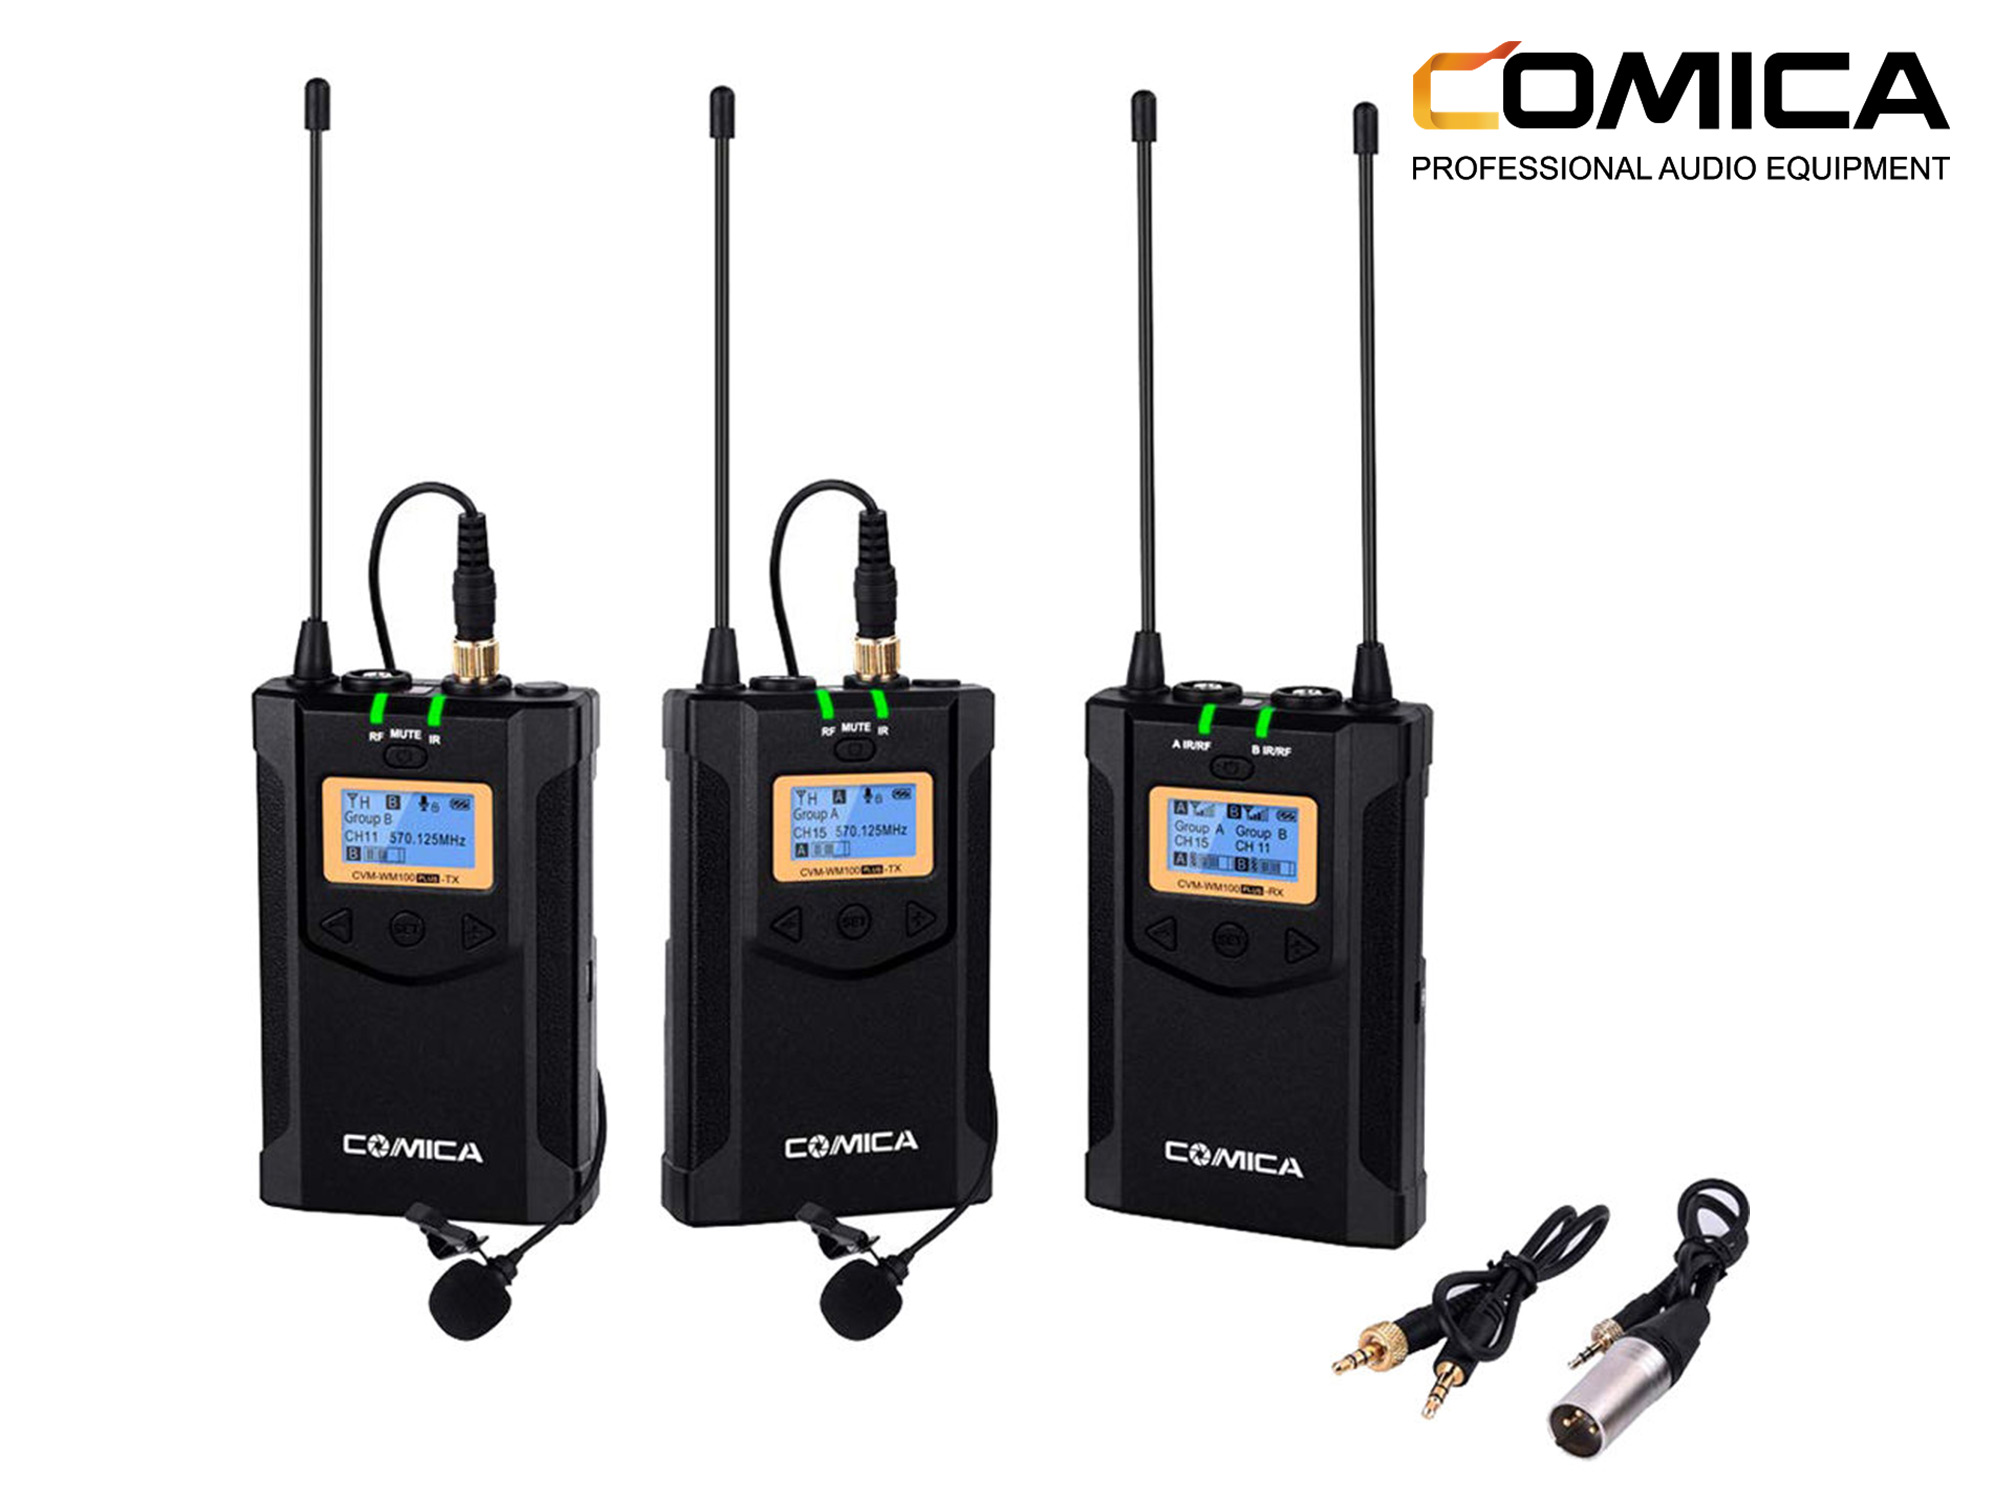 Comica Audio CVM-WM100 PLUS 2-Person Camera-Mount Wireless Omni Lavalier Microphone System